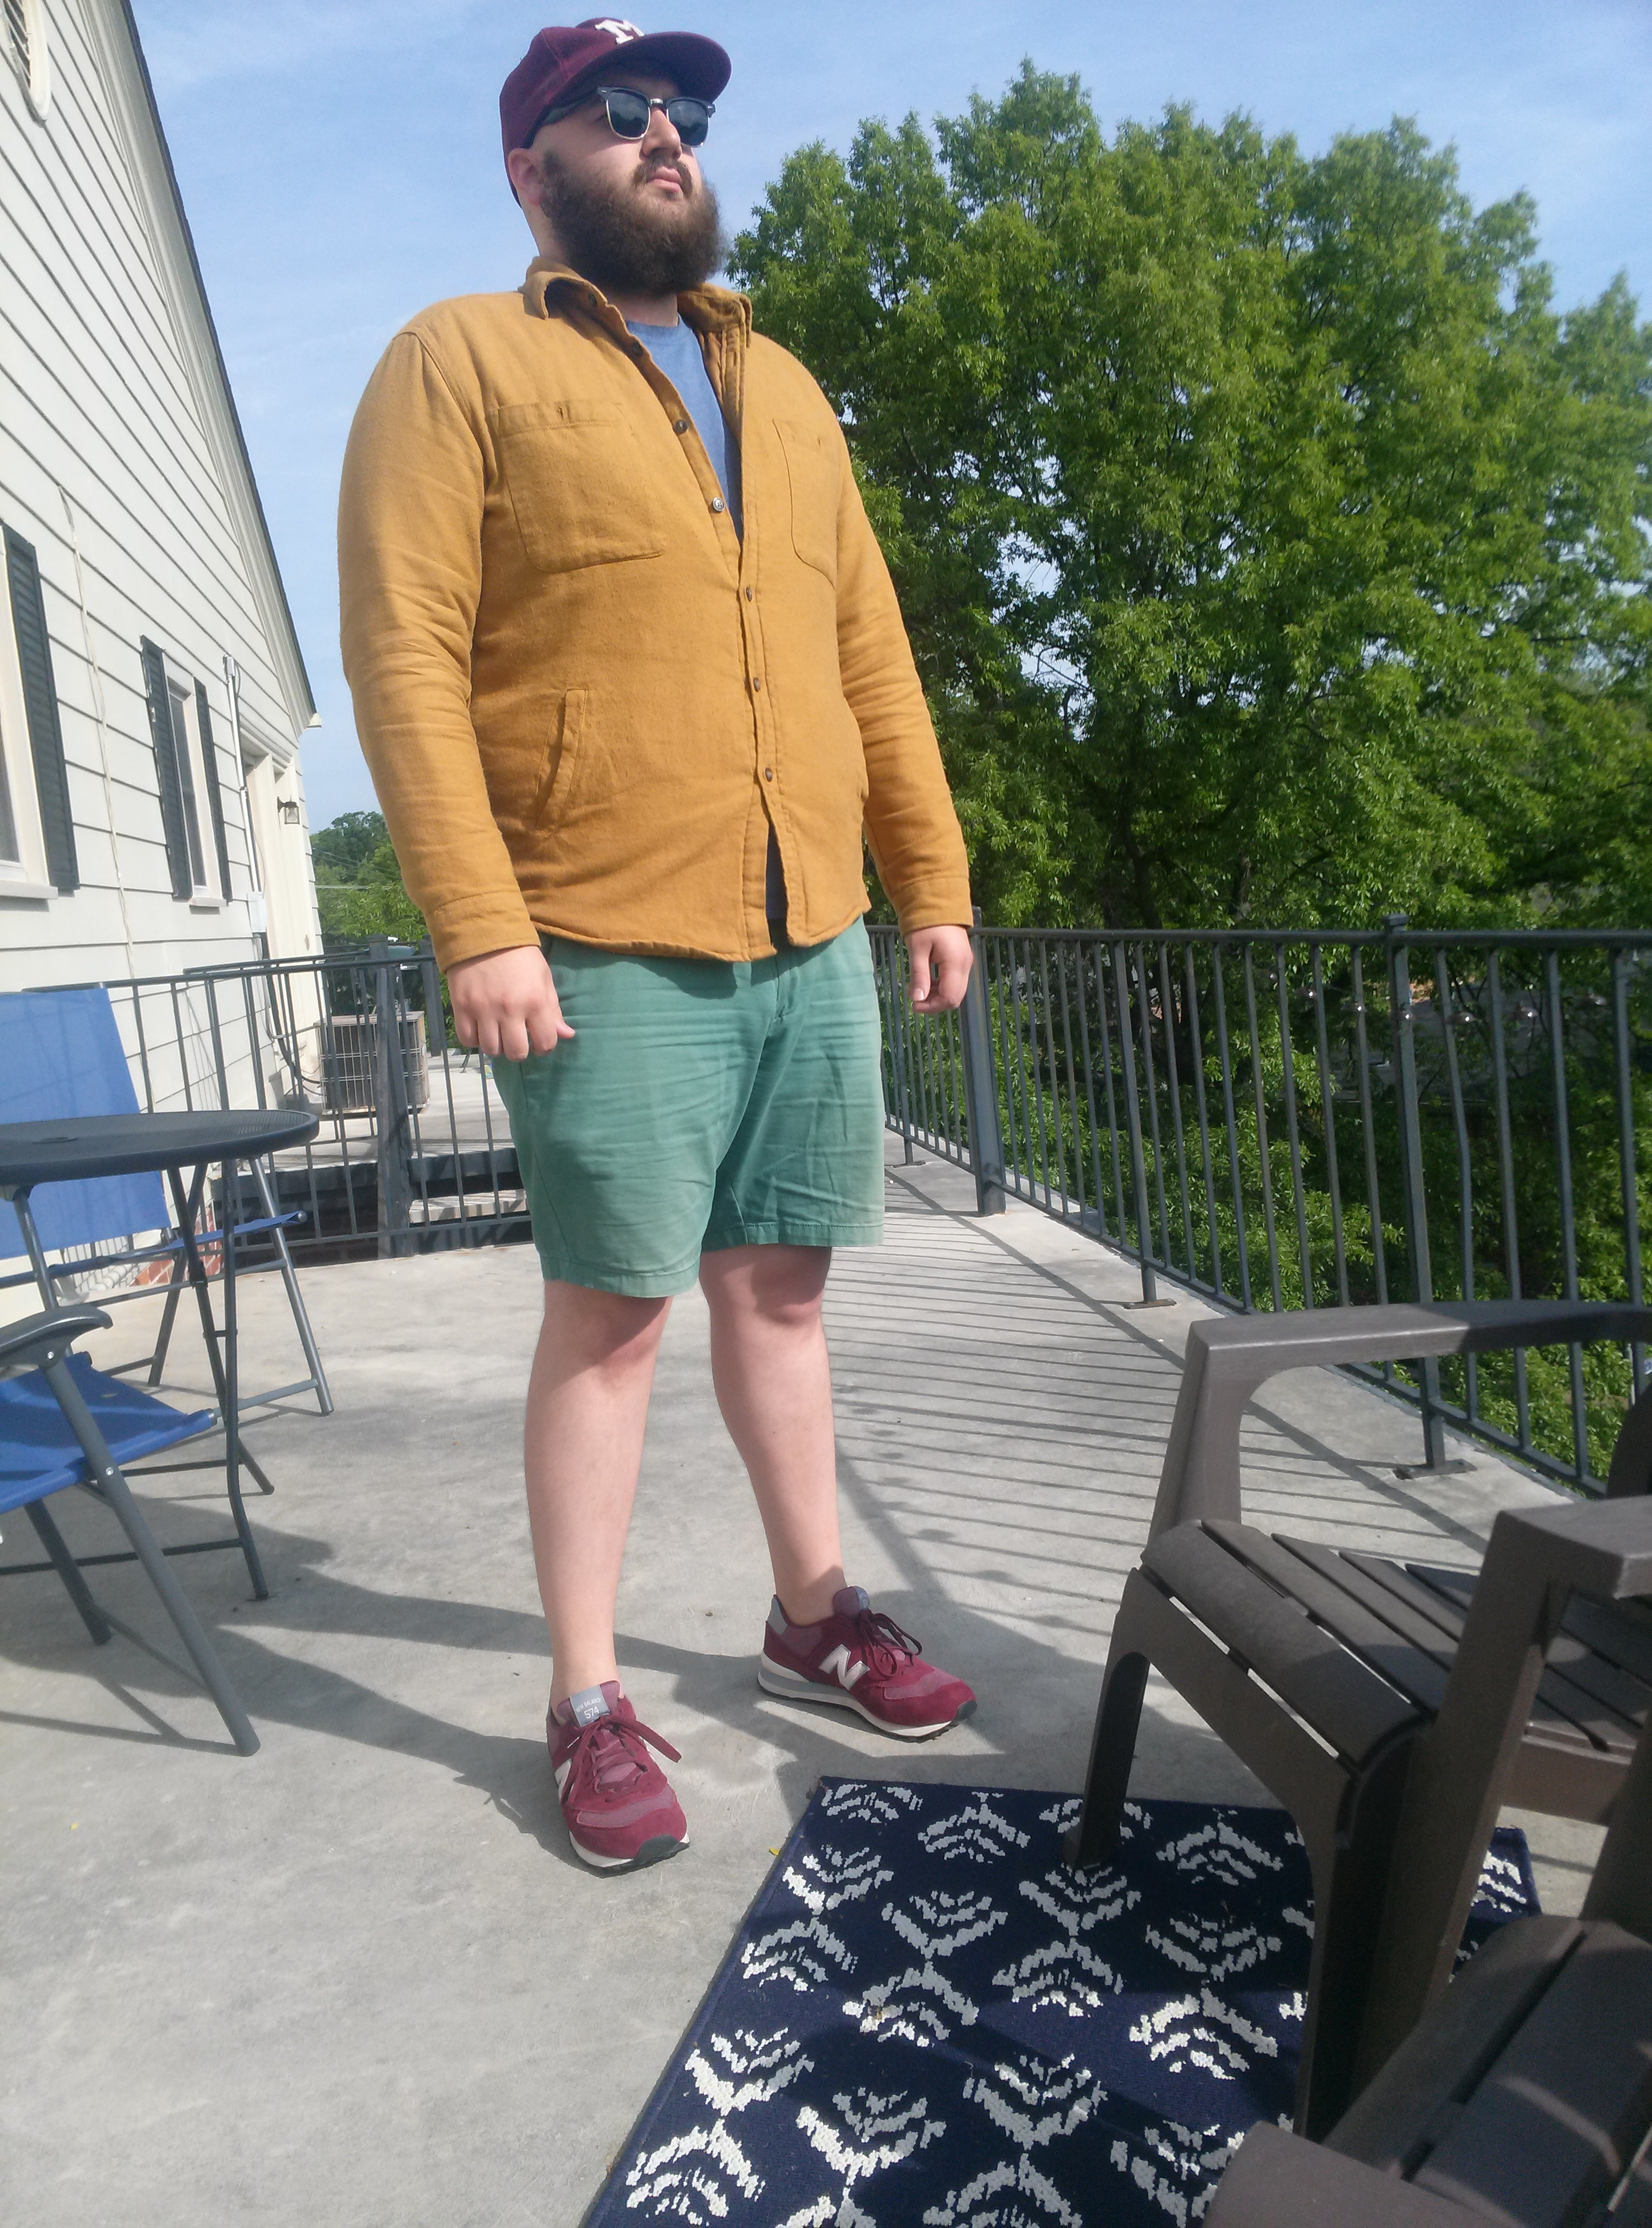 what are your guys' opinions on fat guys wearing shorts